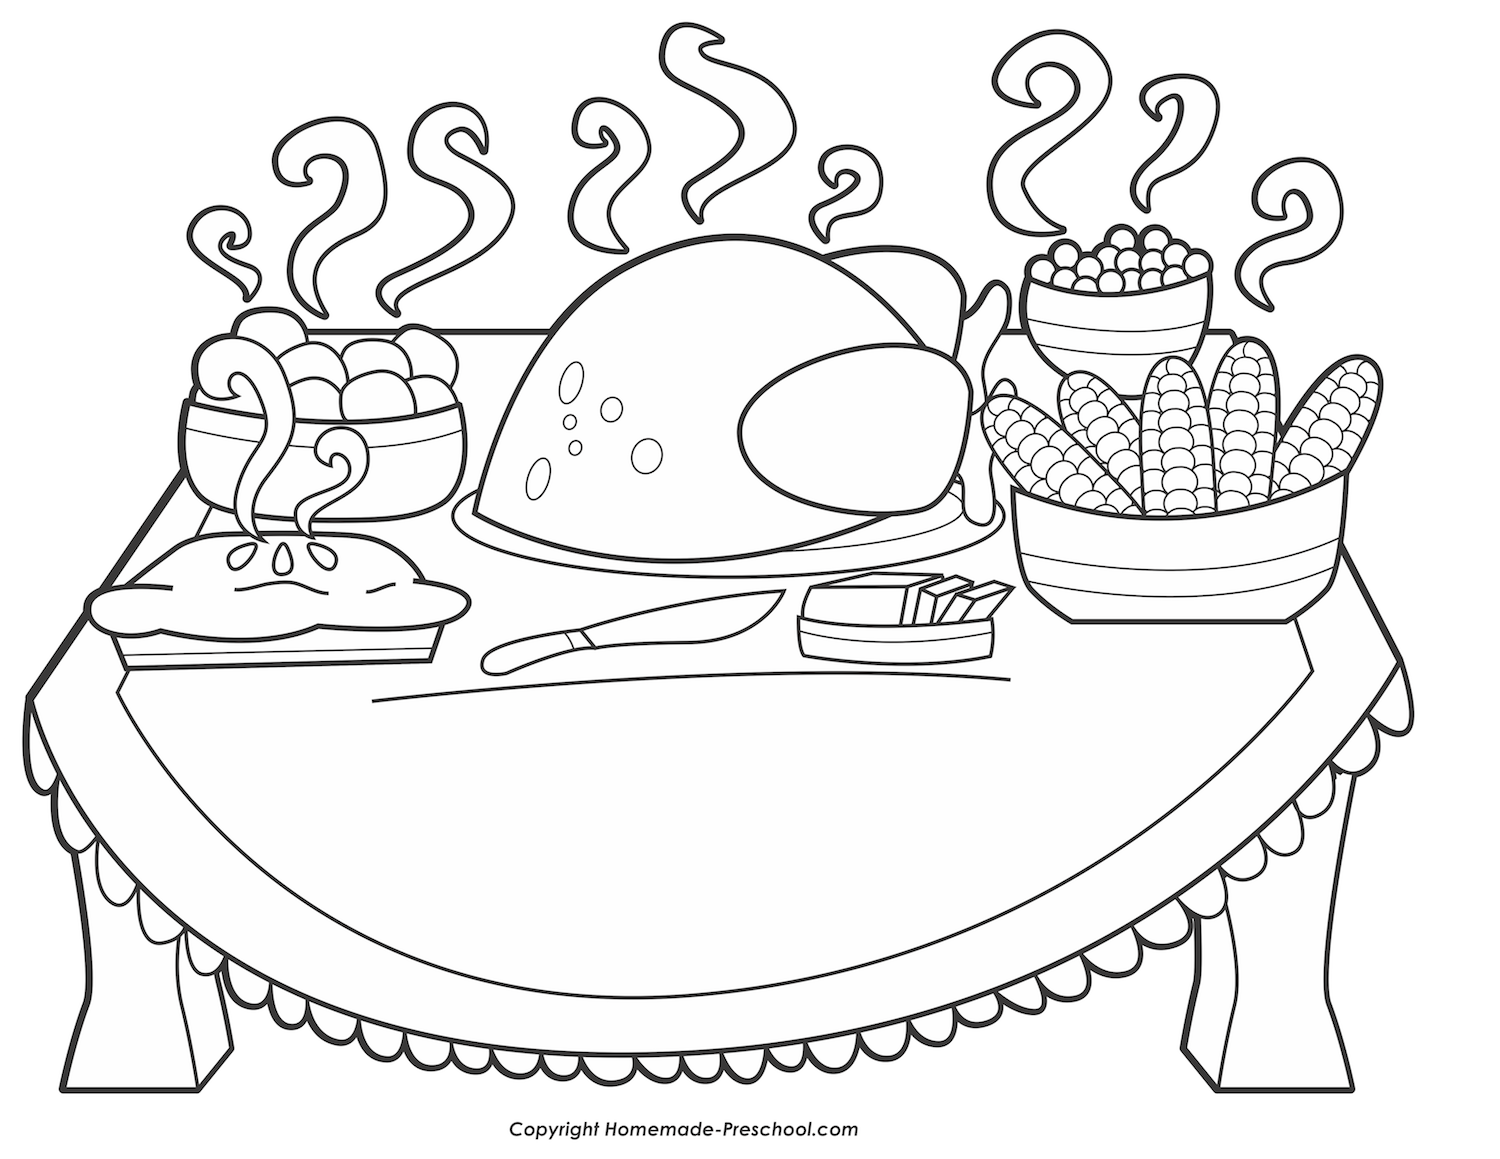 turkey dinner coloring page turkey dinner drawing at getdrawings free download page turkey dinner coloring